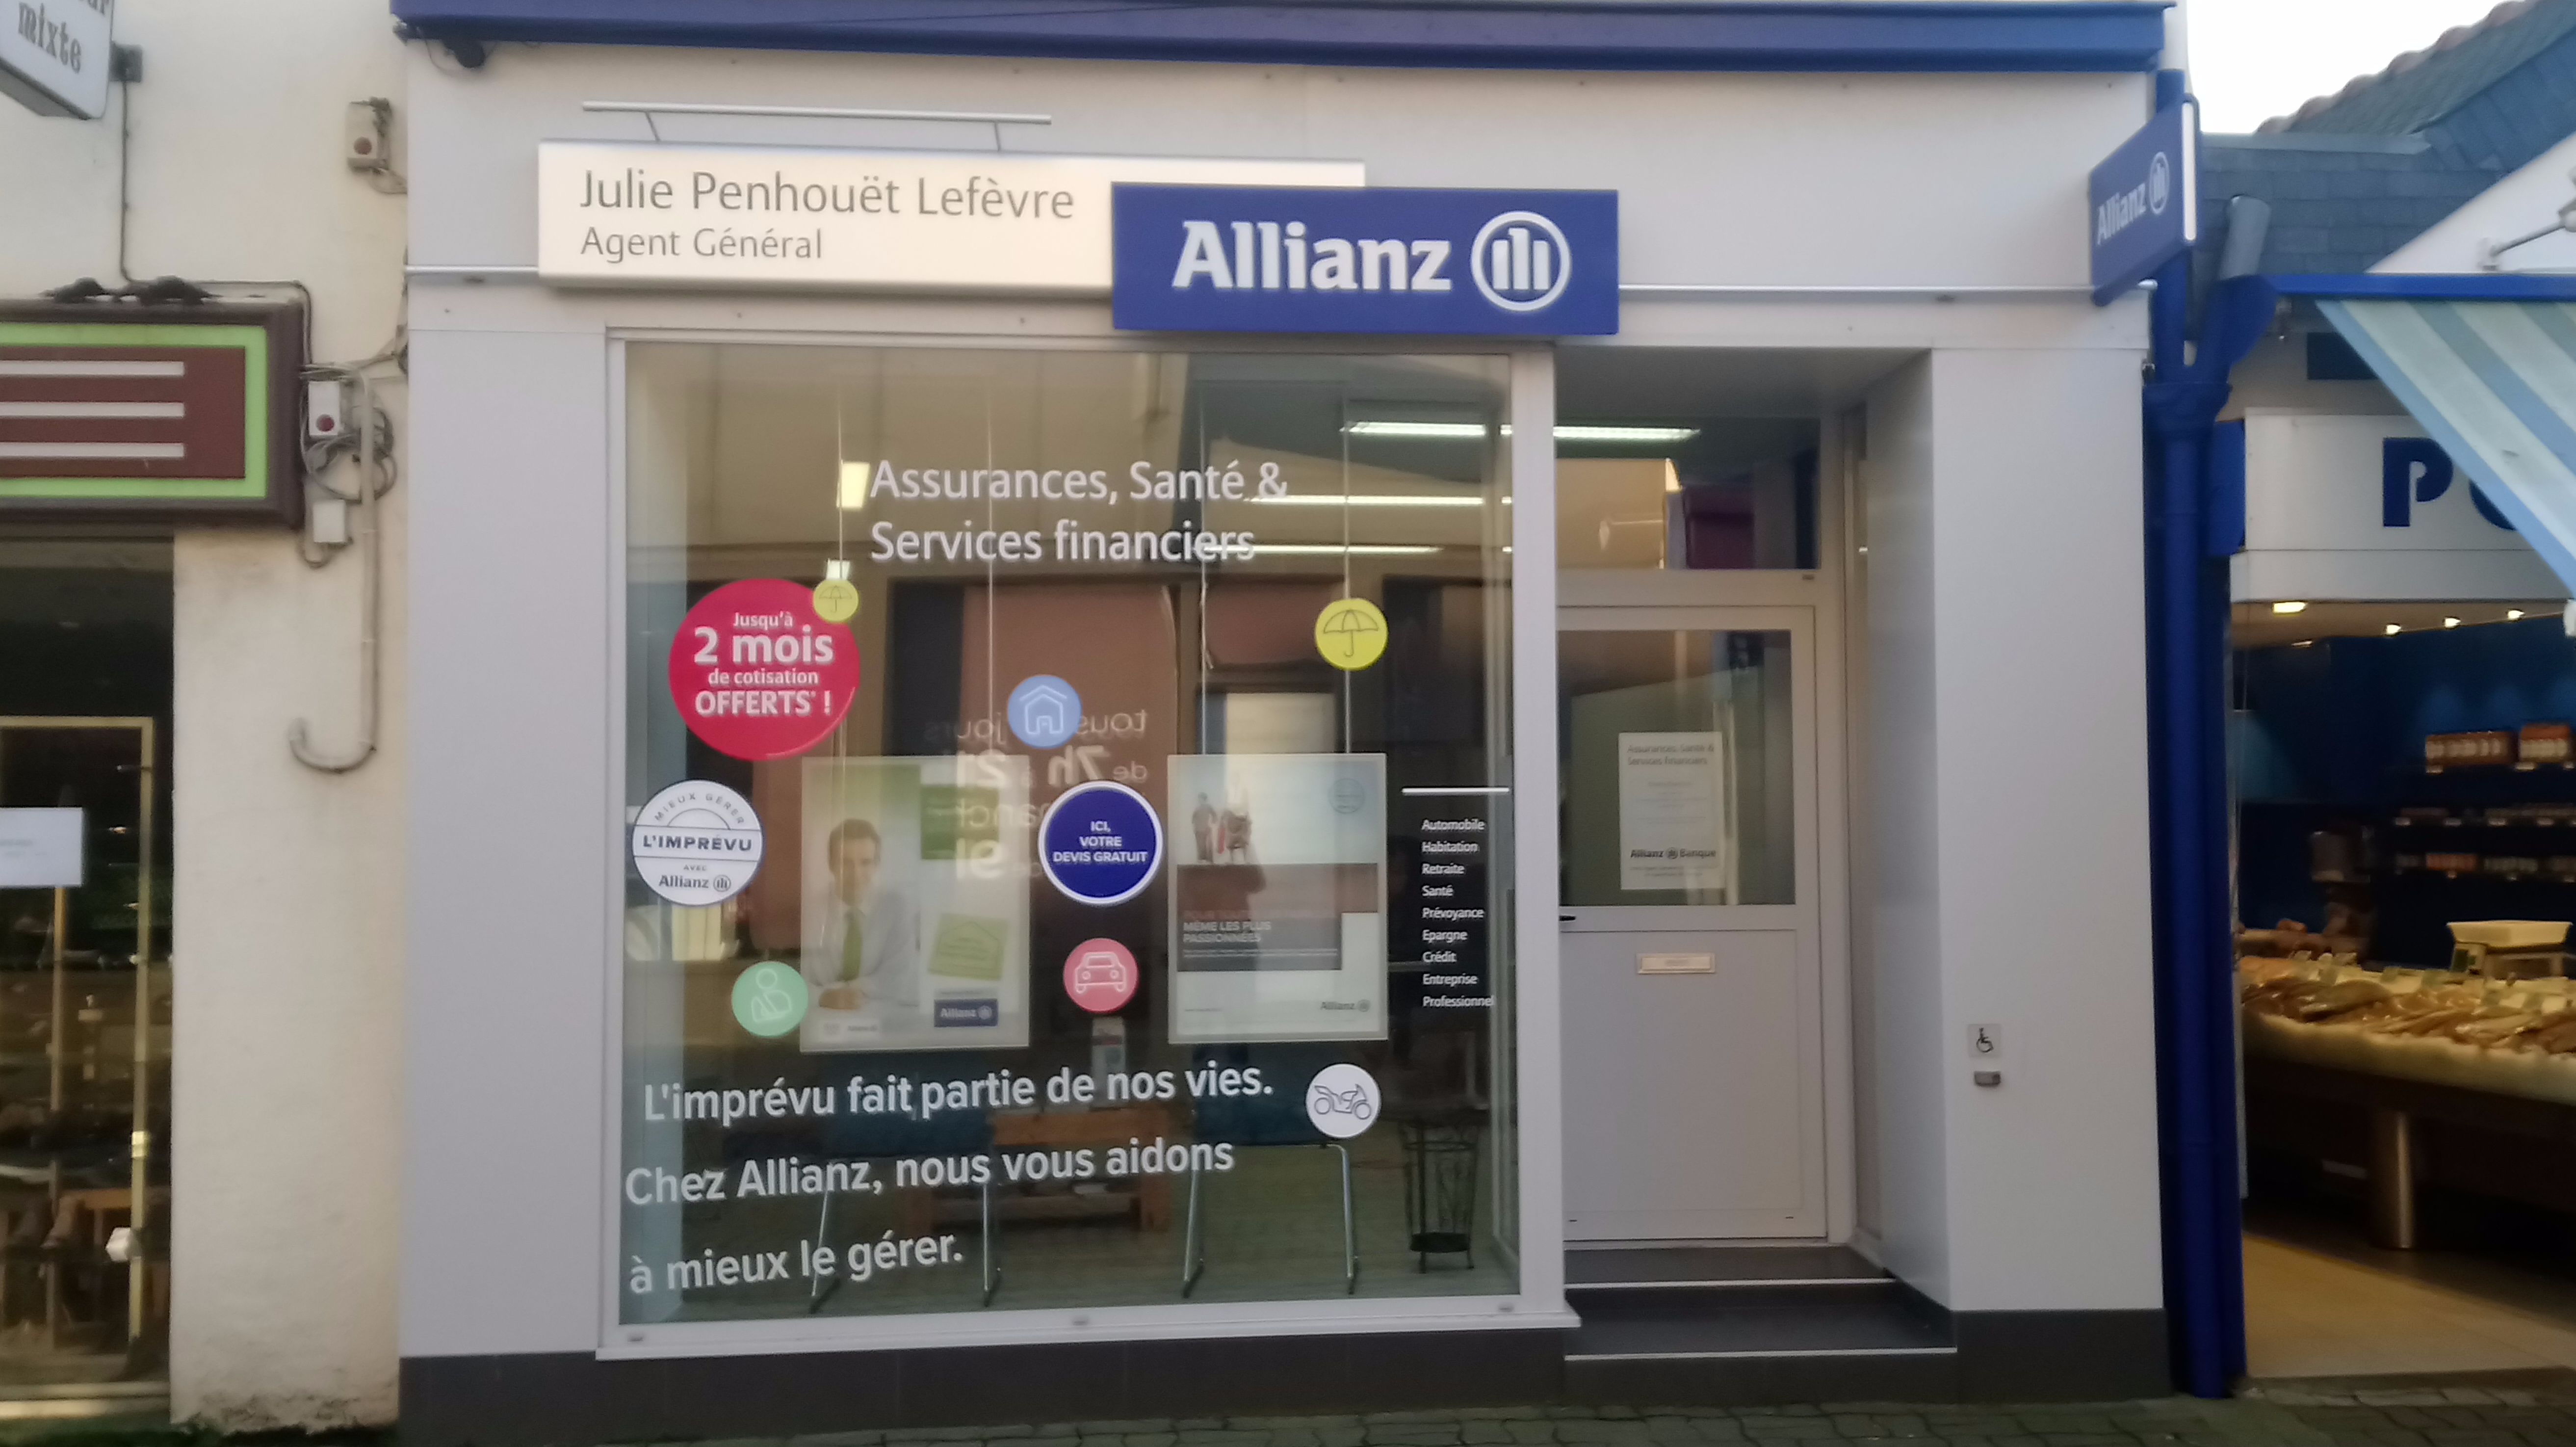 Allianz PAIMPOL - Julie PENHOUET-LEFEVRE